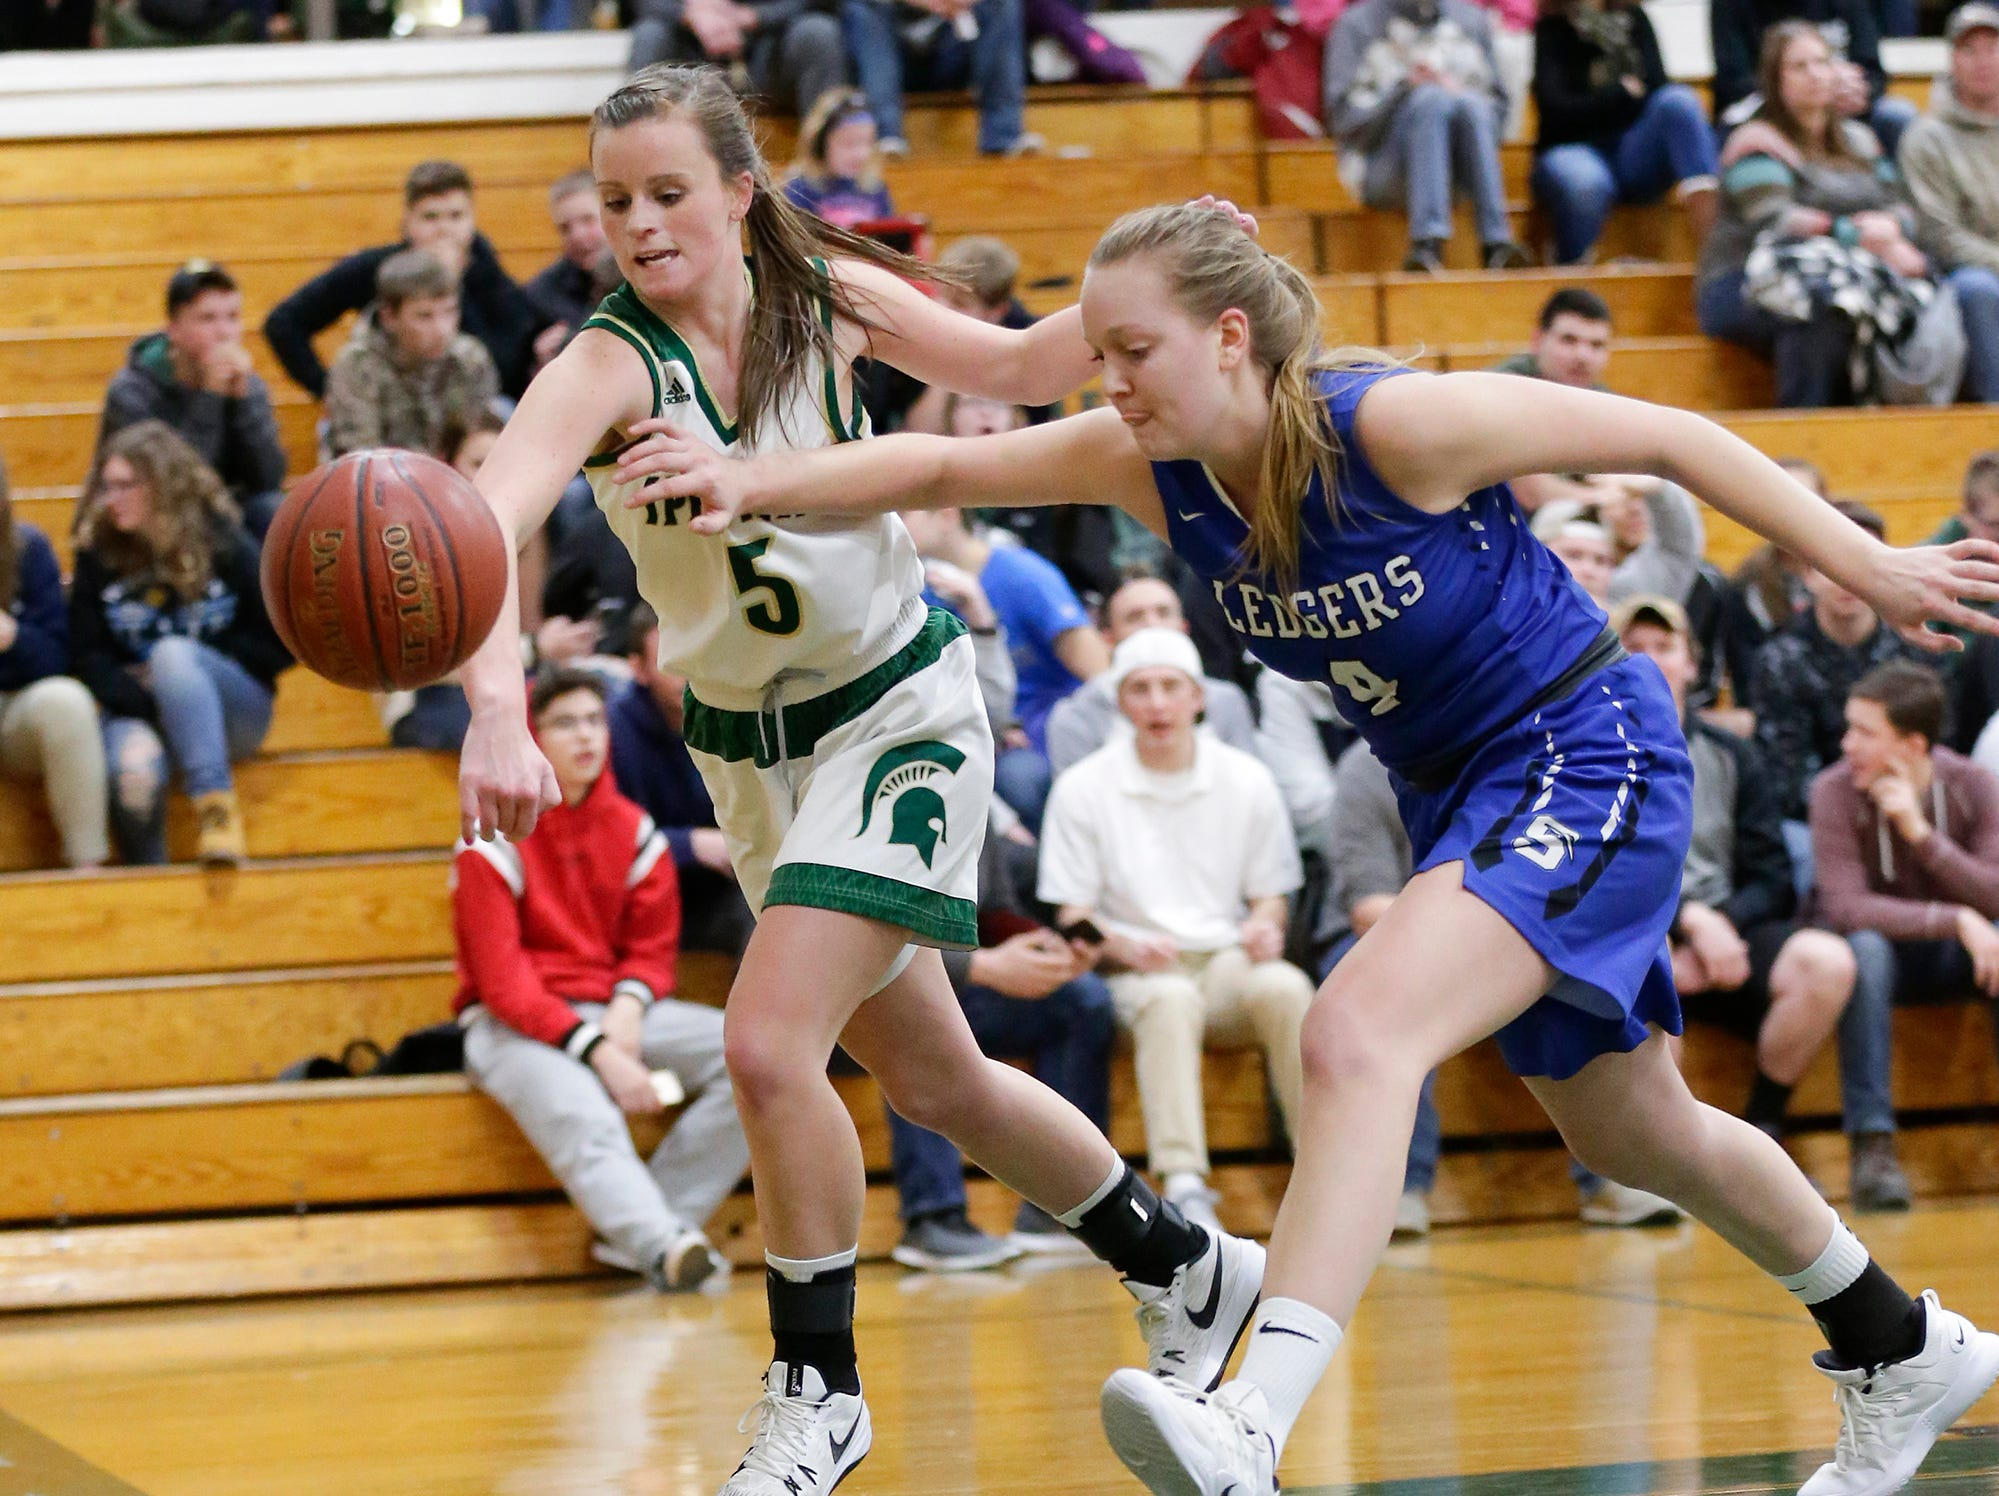 Laconia High School girls basketball's Jen Beattie and St. Mary's Springs Academy's Brianna Freund attempt to get a ball before it goes out of bounds Tuesday, January 15, 2019 during their game in Rosendale. Laconia won the game 57-45. Doug Raflik/USA TODAY NETWORK-Wisconsin